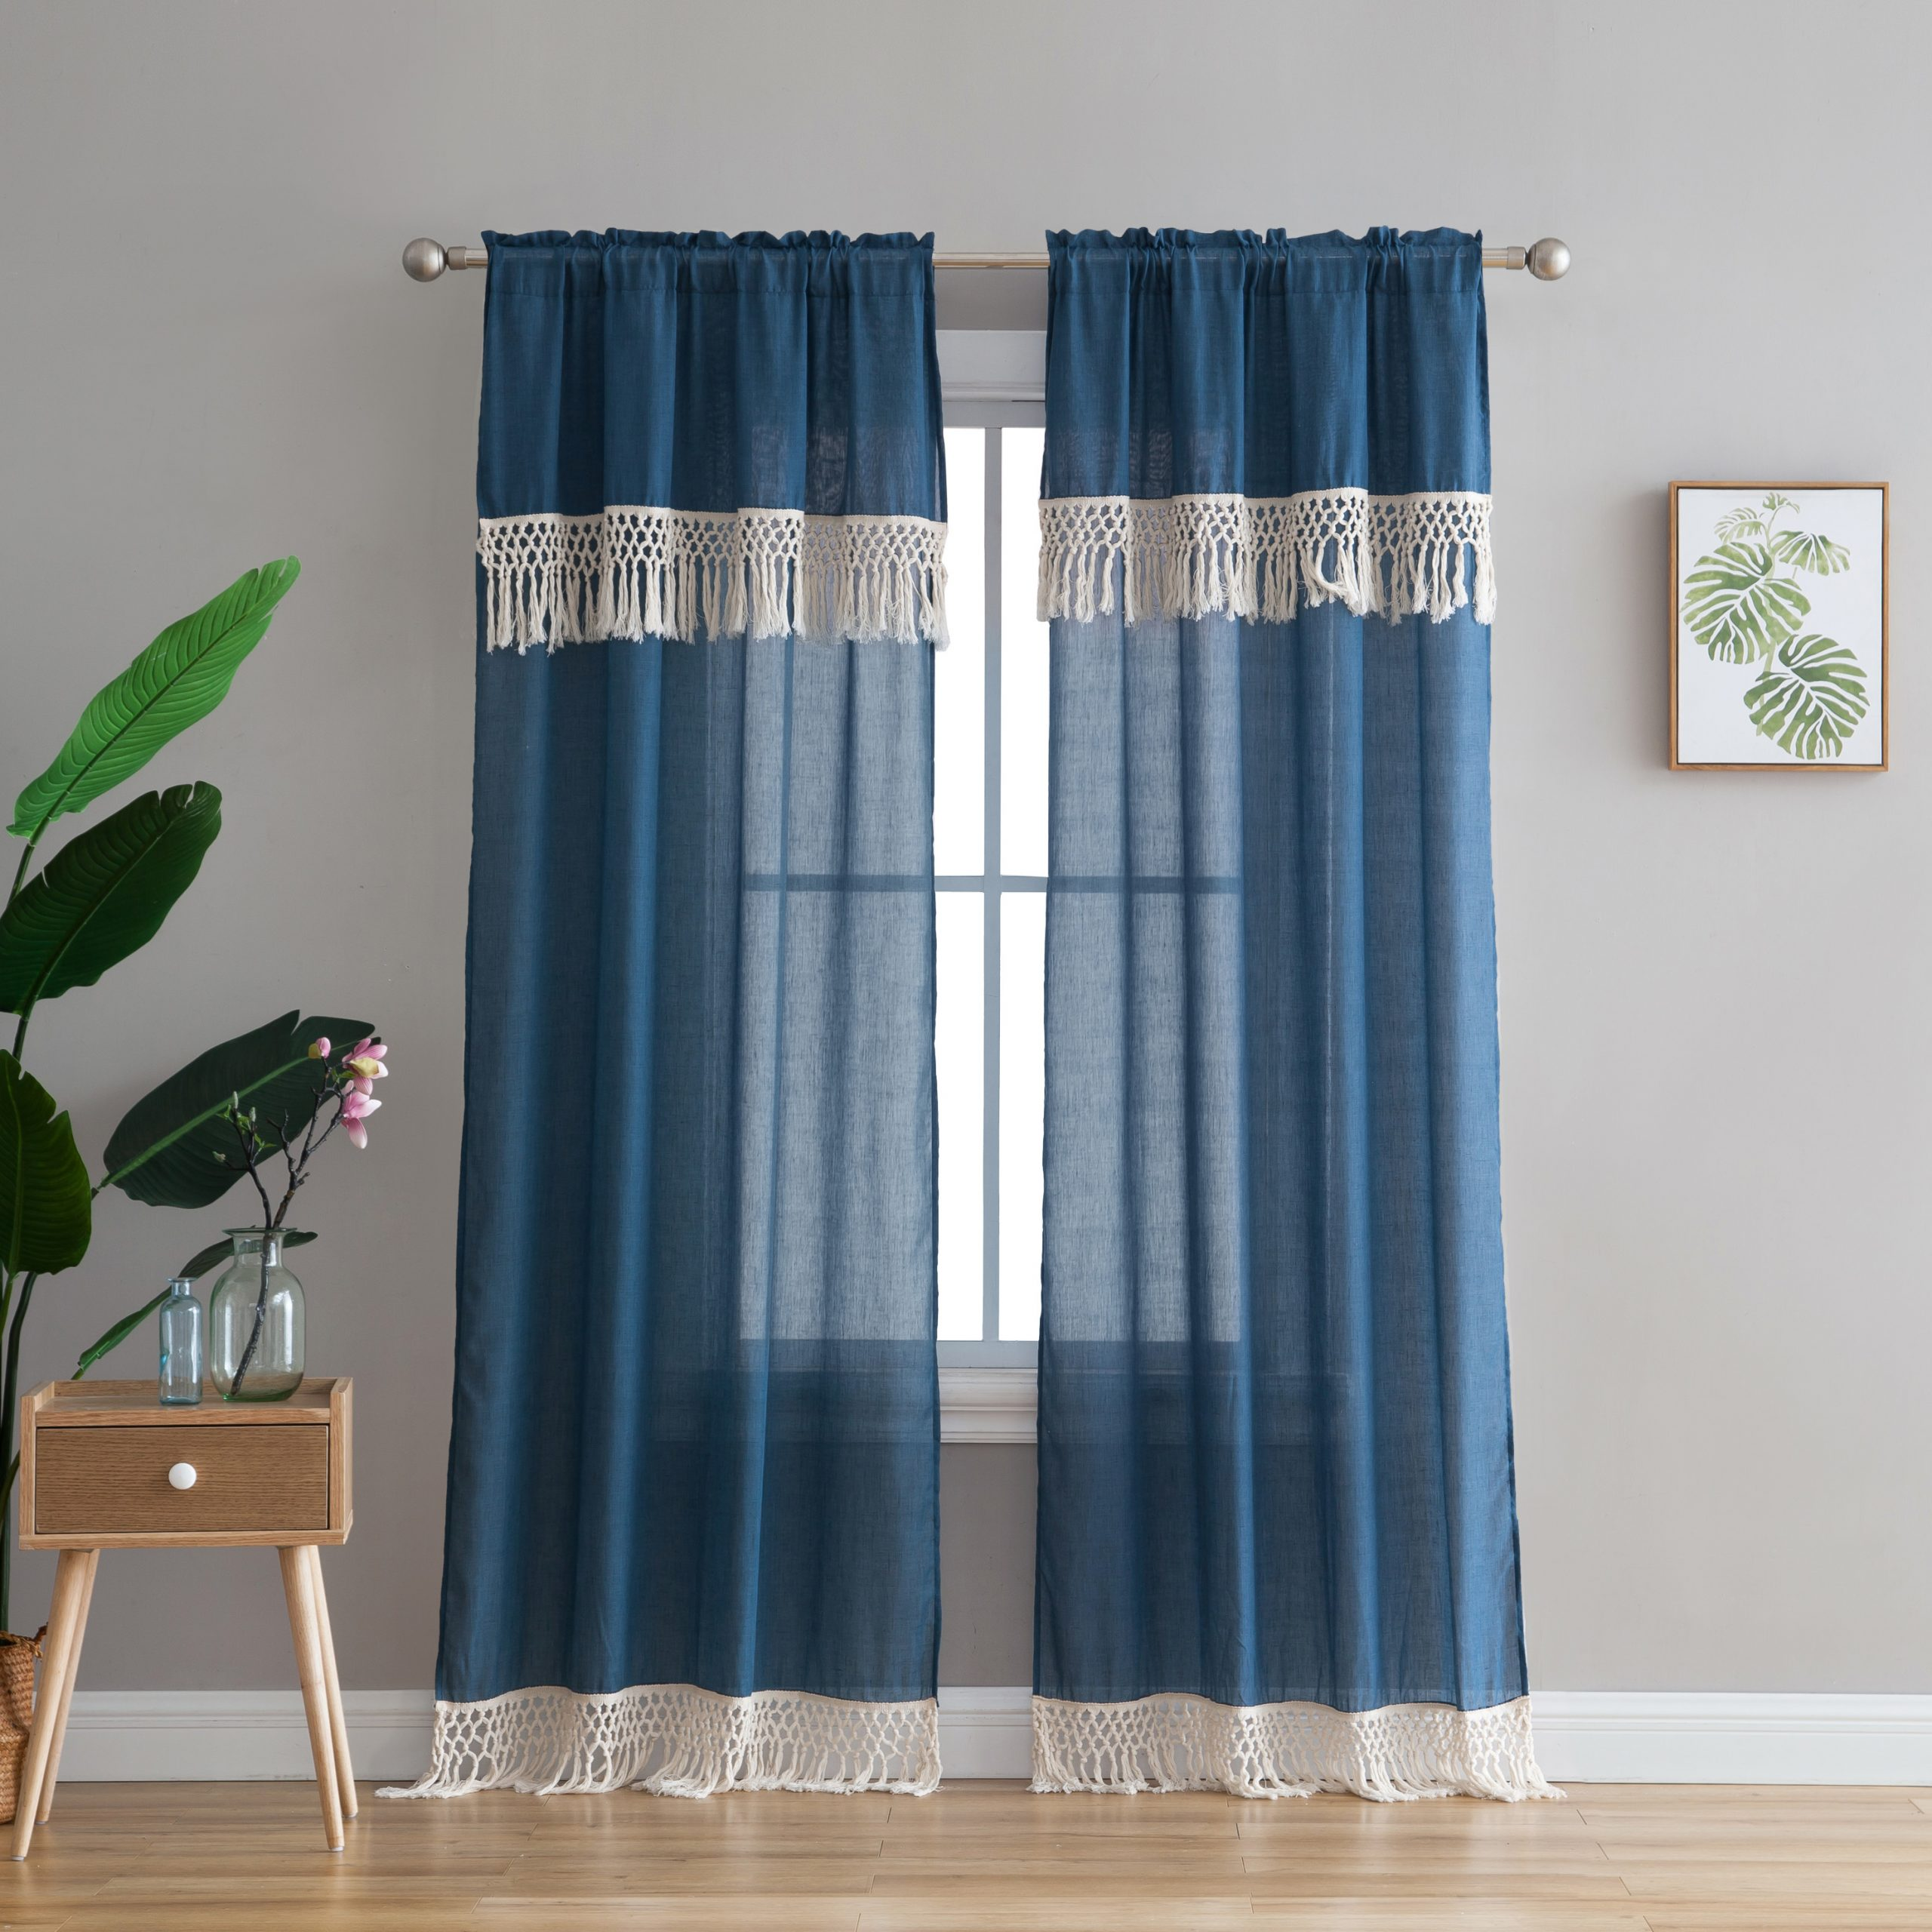 """Peach & Oak, Lydia Single Window Panel – Blue With Fringe – 84"""" Intended For Class Blue Cotton Blend Macrame Trimmed Decorative Window Curtains (View 5 of 20)"""